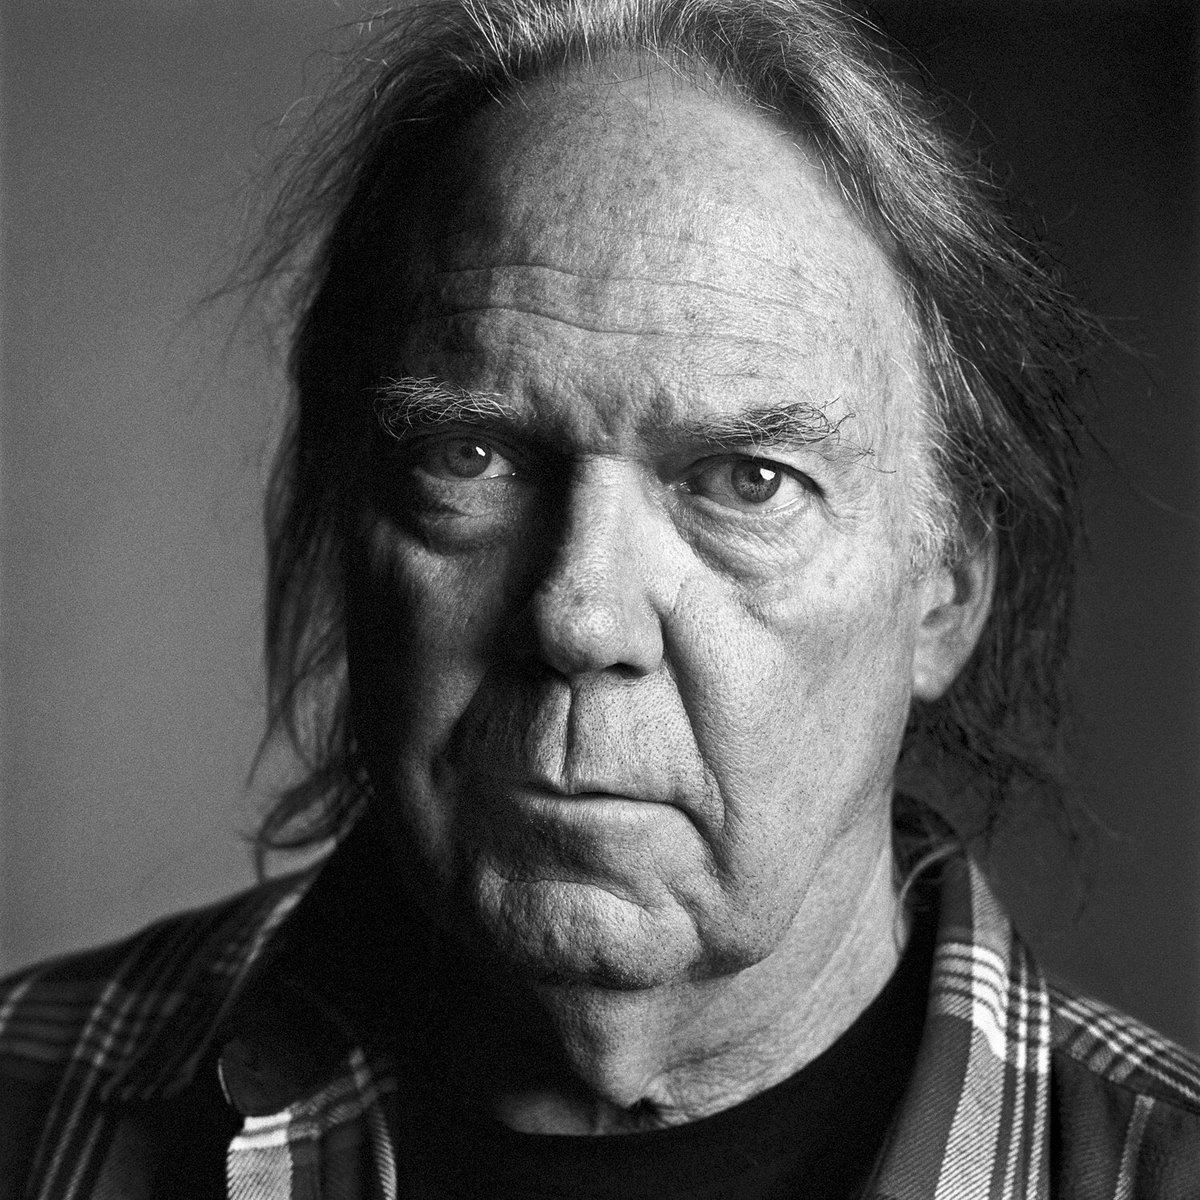 This #Saturday I read from my book #beautifulscars to honour&amp;induct #neilyoung into @canadiansongs Hall Of Fame @Massey_Hall #Toronto<br>http://pic.twitter.com/goIQFqY7If